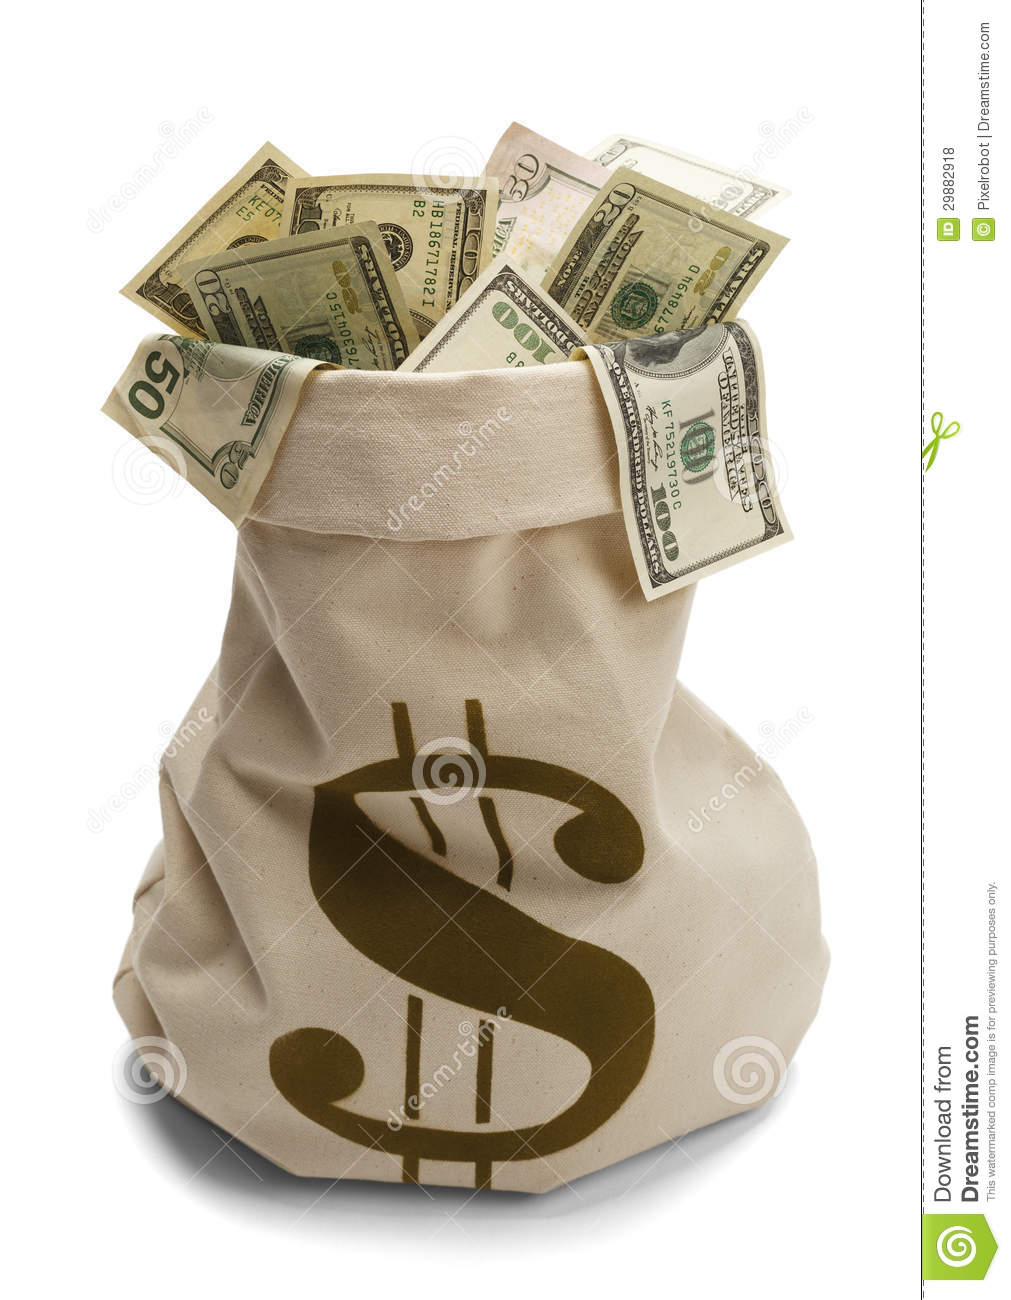 Bag full of us money with money symbol isolated on a white background